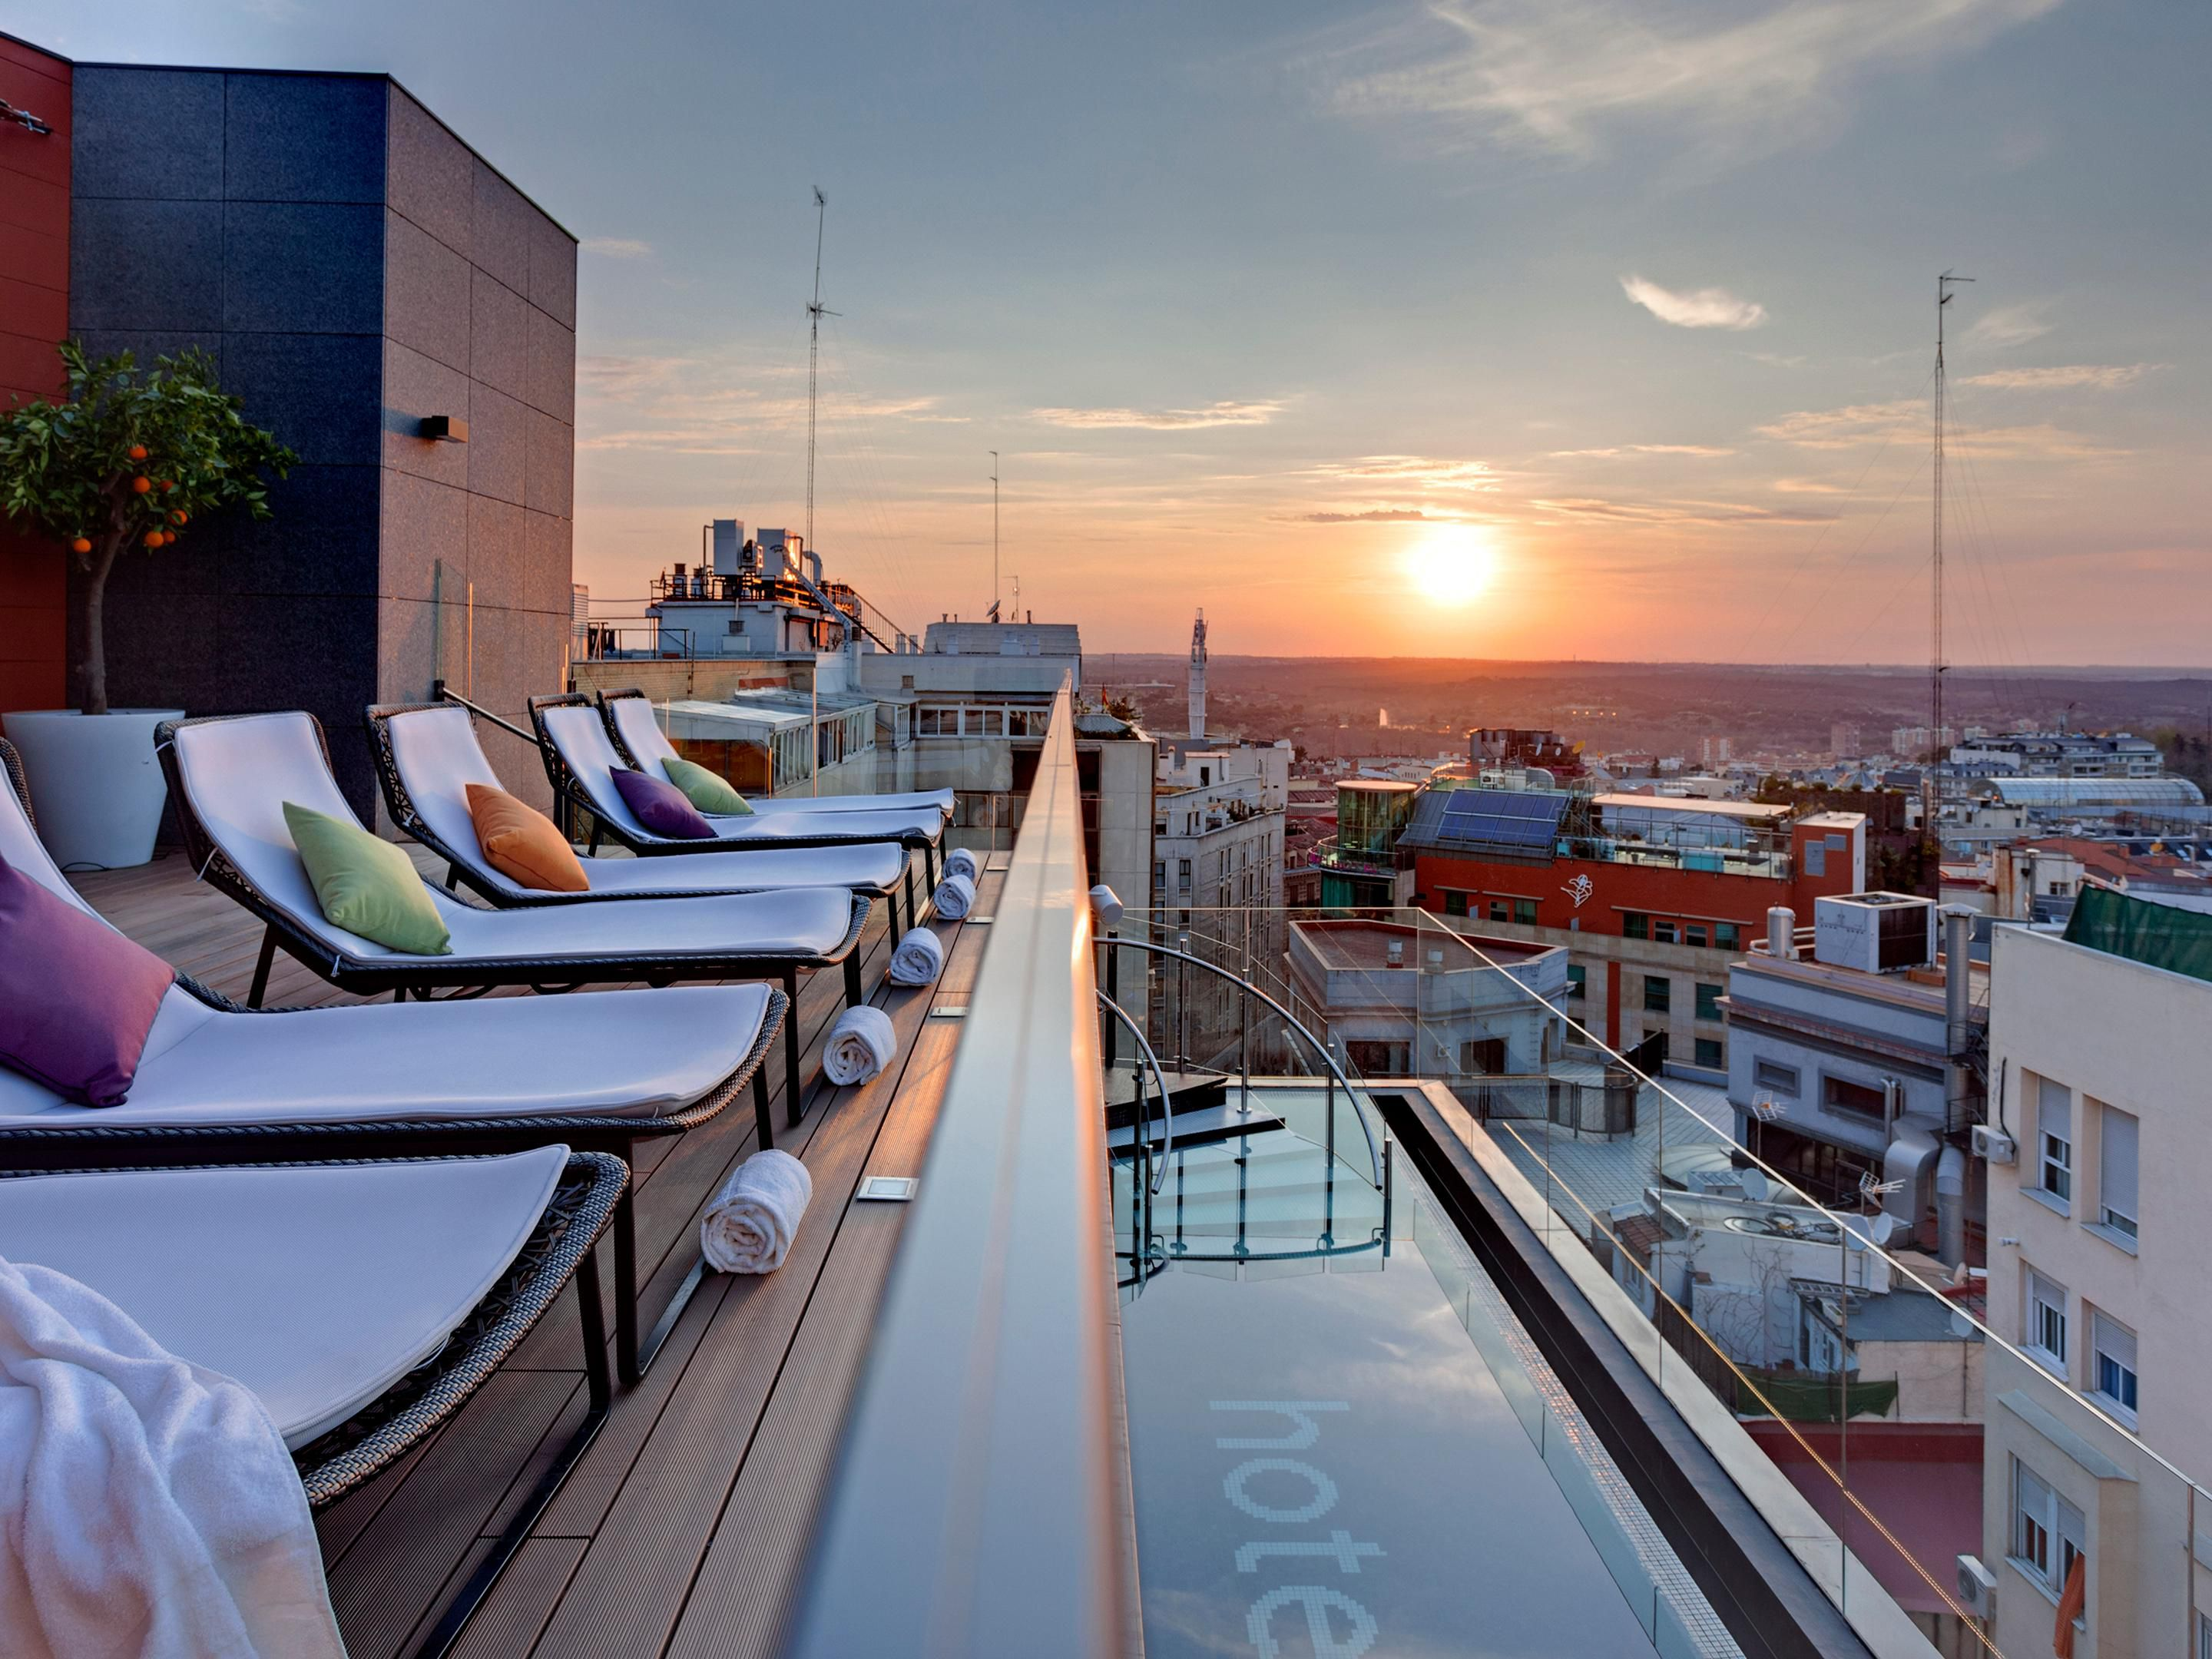 Hotel Madrid Piscina Climatizada Find Madrid Hotels Top 13 Hotels In Madrid Spain By Ihg